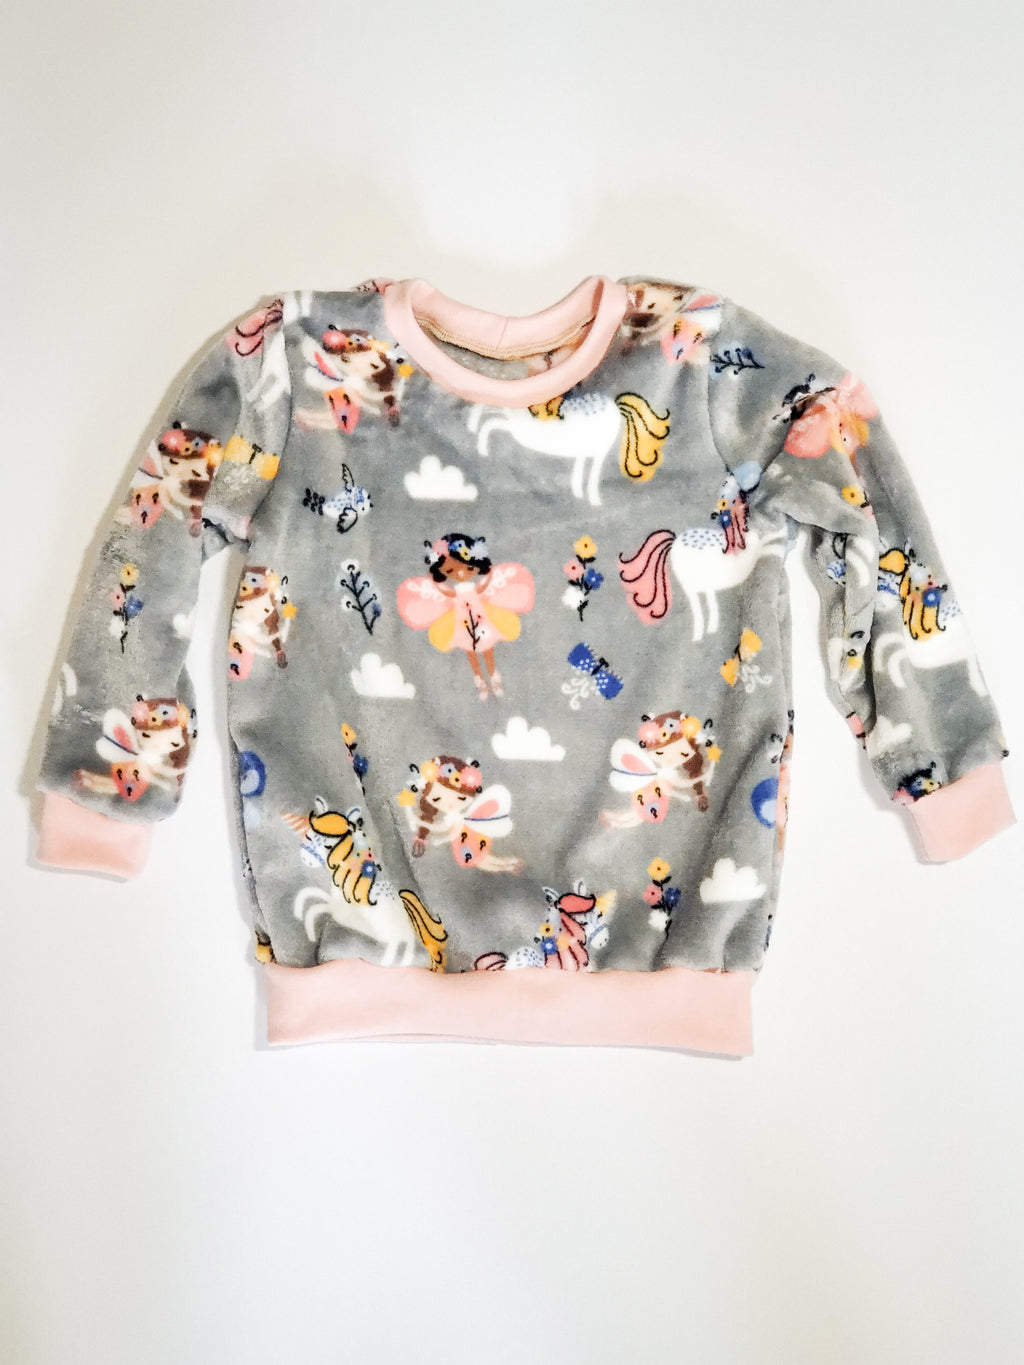 Fairy super soft luxe sweatshirt